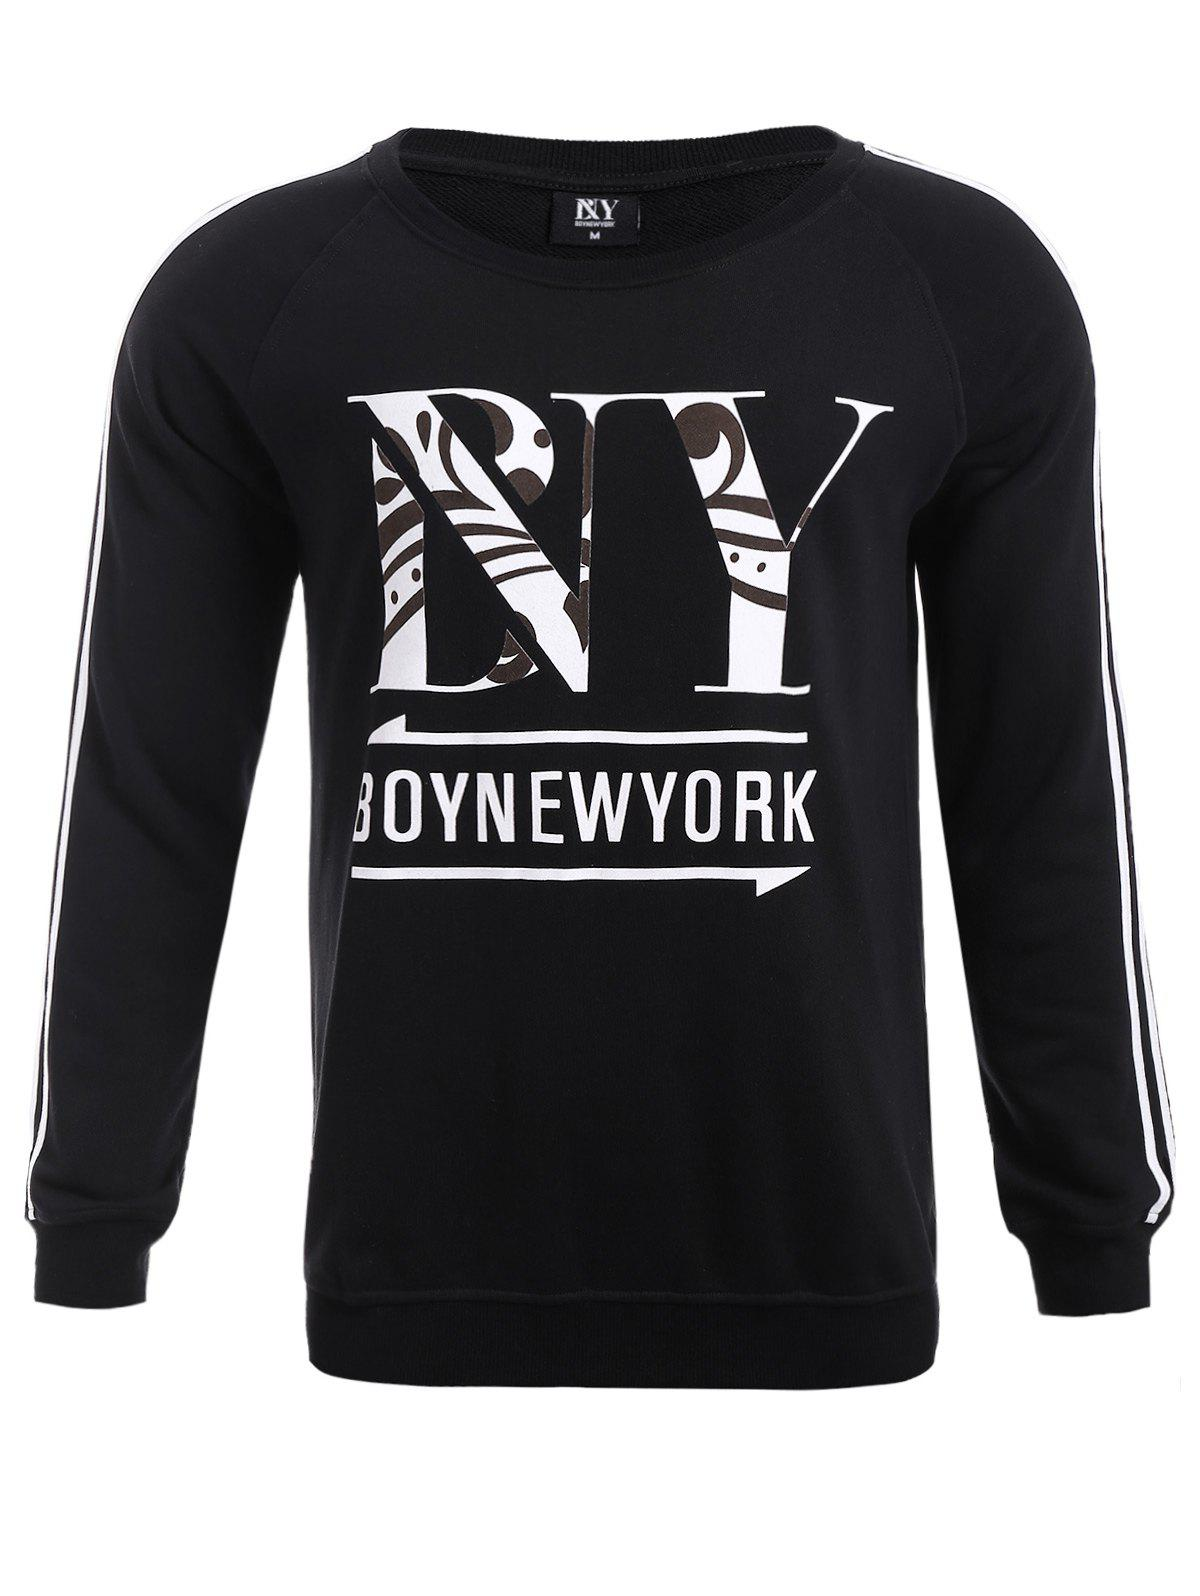 BoyNewYork Stripes Pattern Sweatshirt - BLACK S